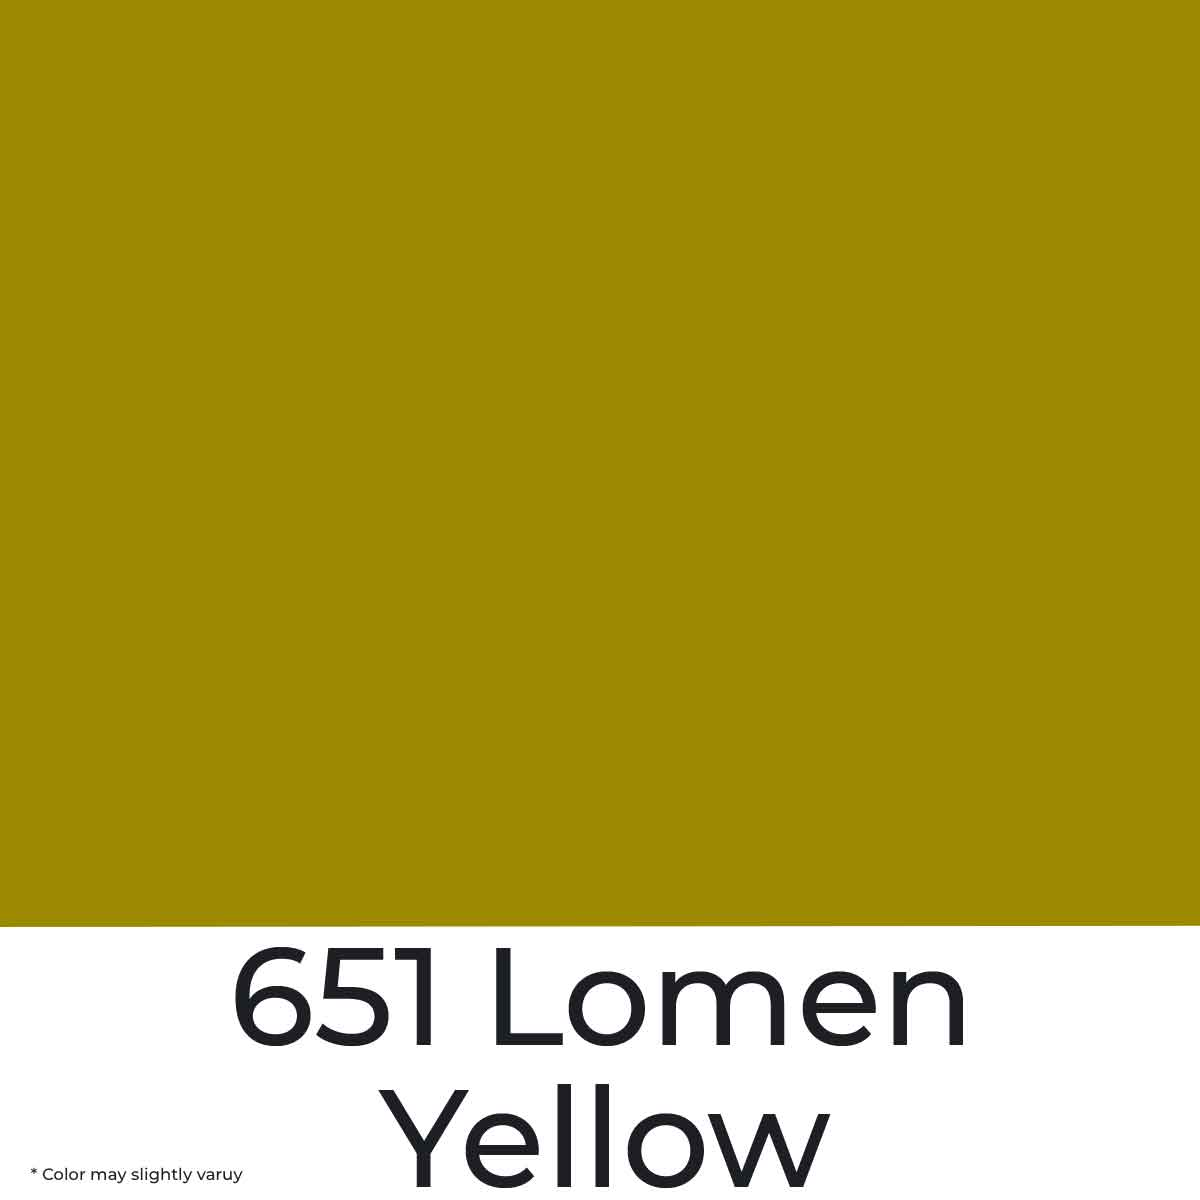 Daler Rowney Acrylic Paint - Lemon Yellow 651 Camel from najmaonline.com